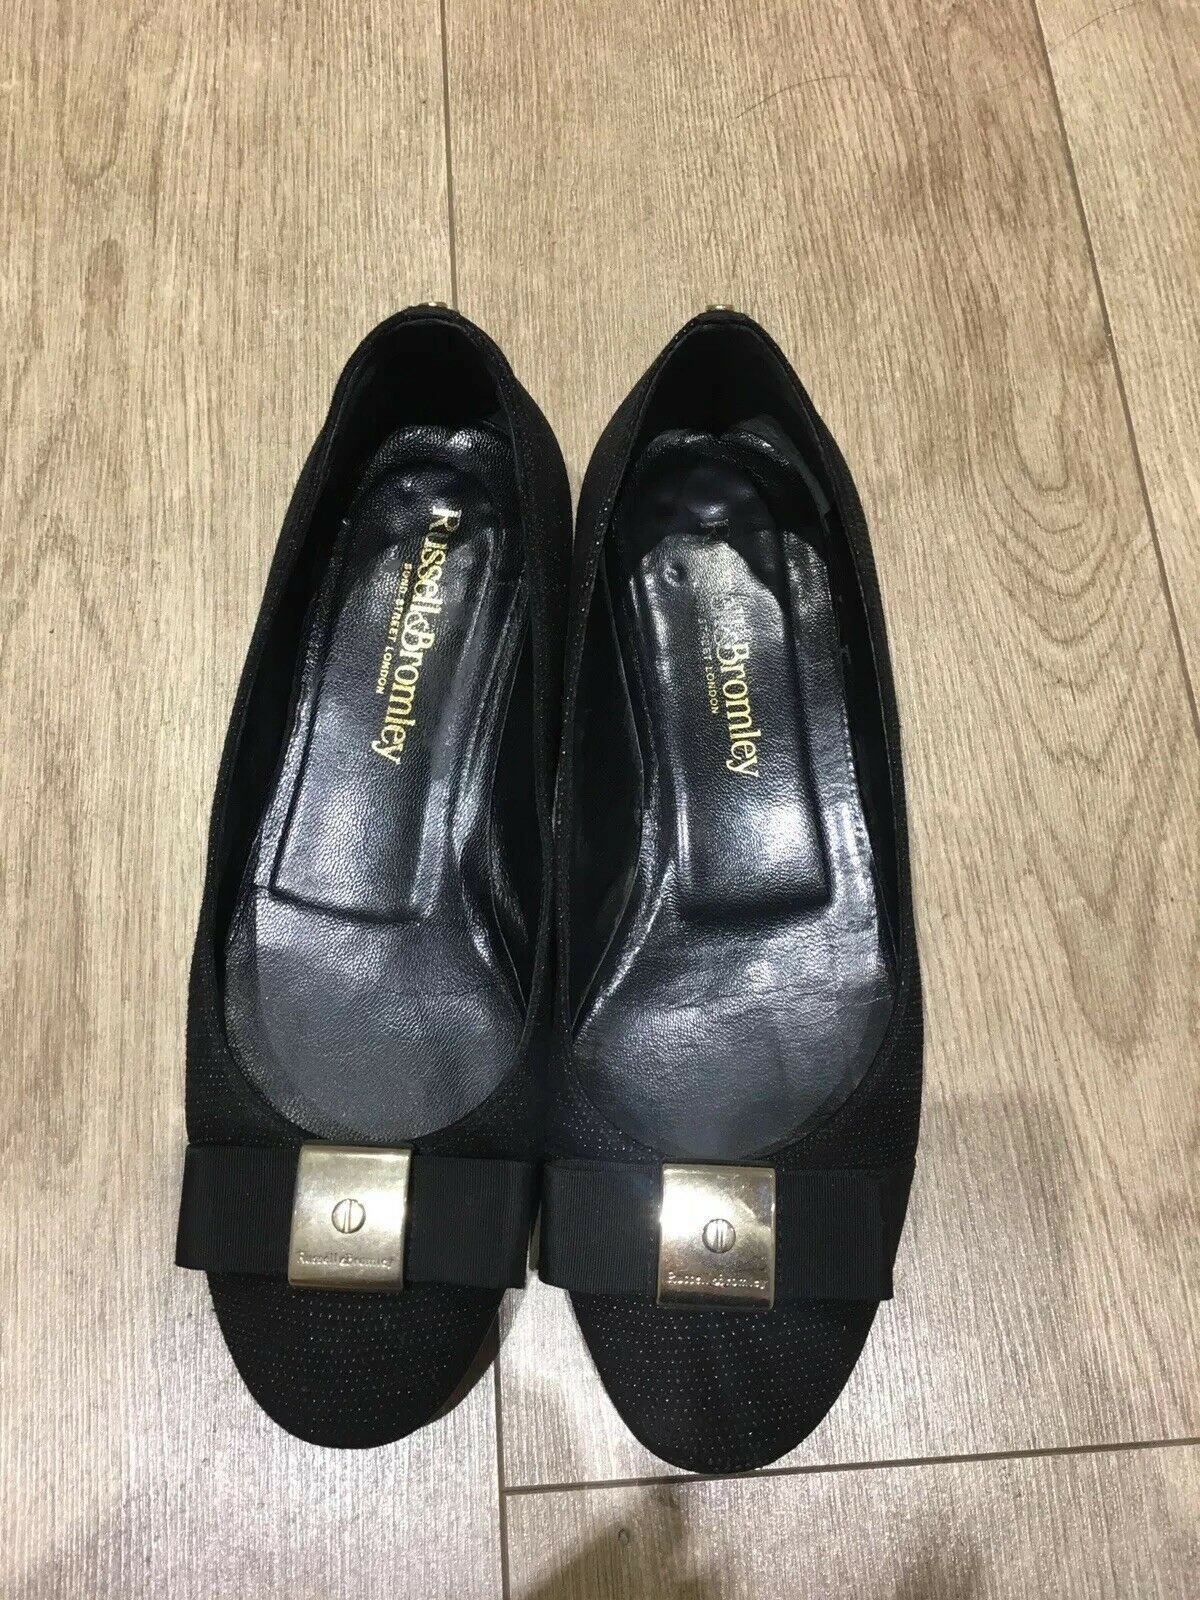 Russell bromley shoes uk size 5